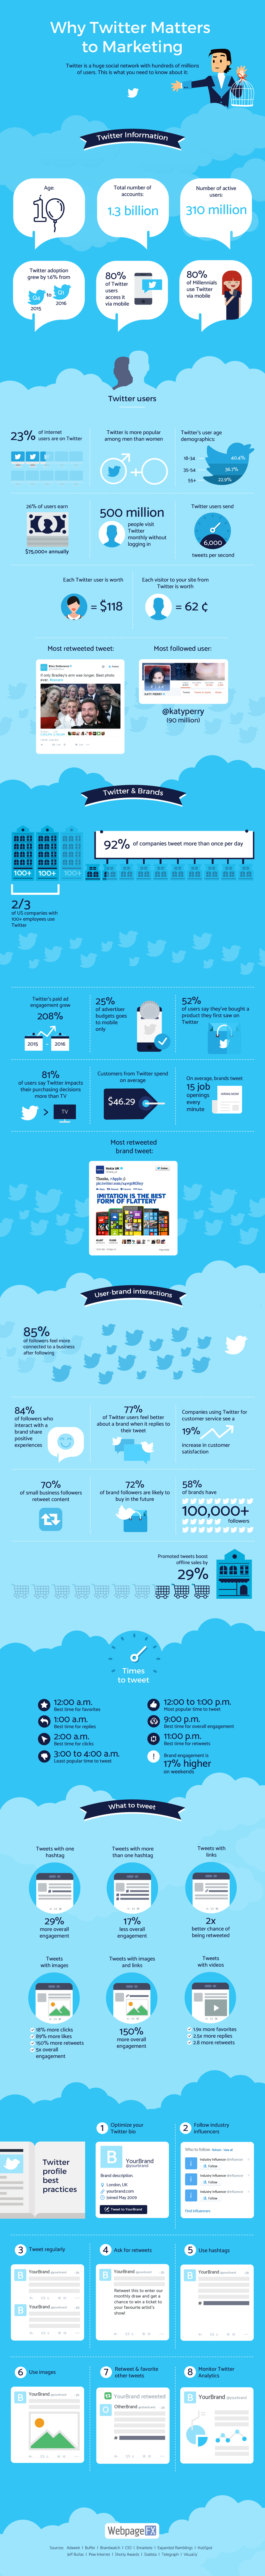 twitter-stats-infographic.png